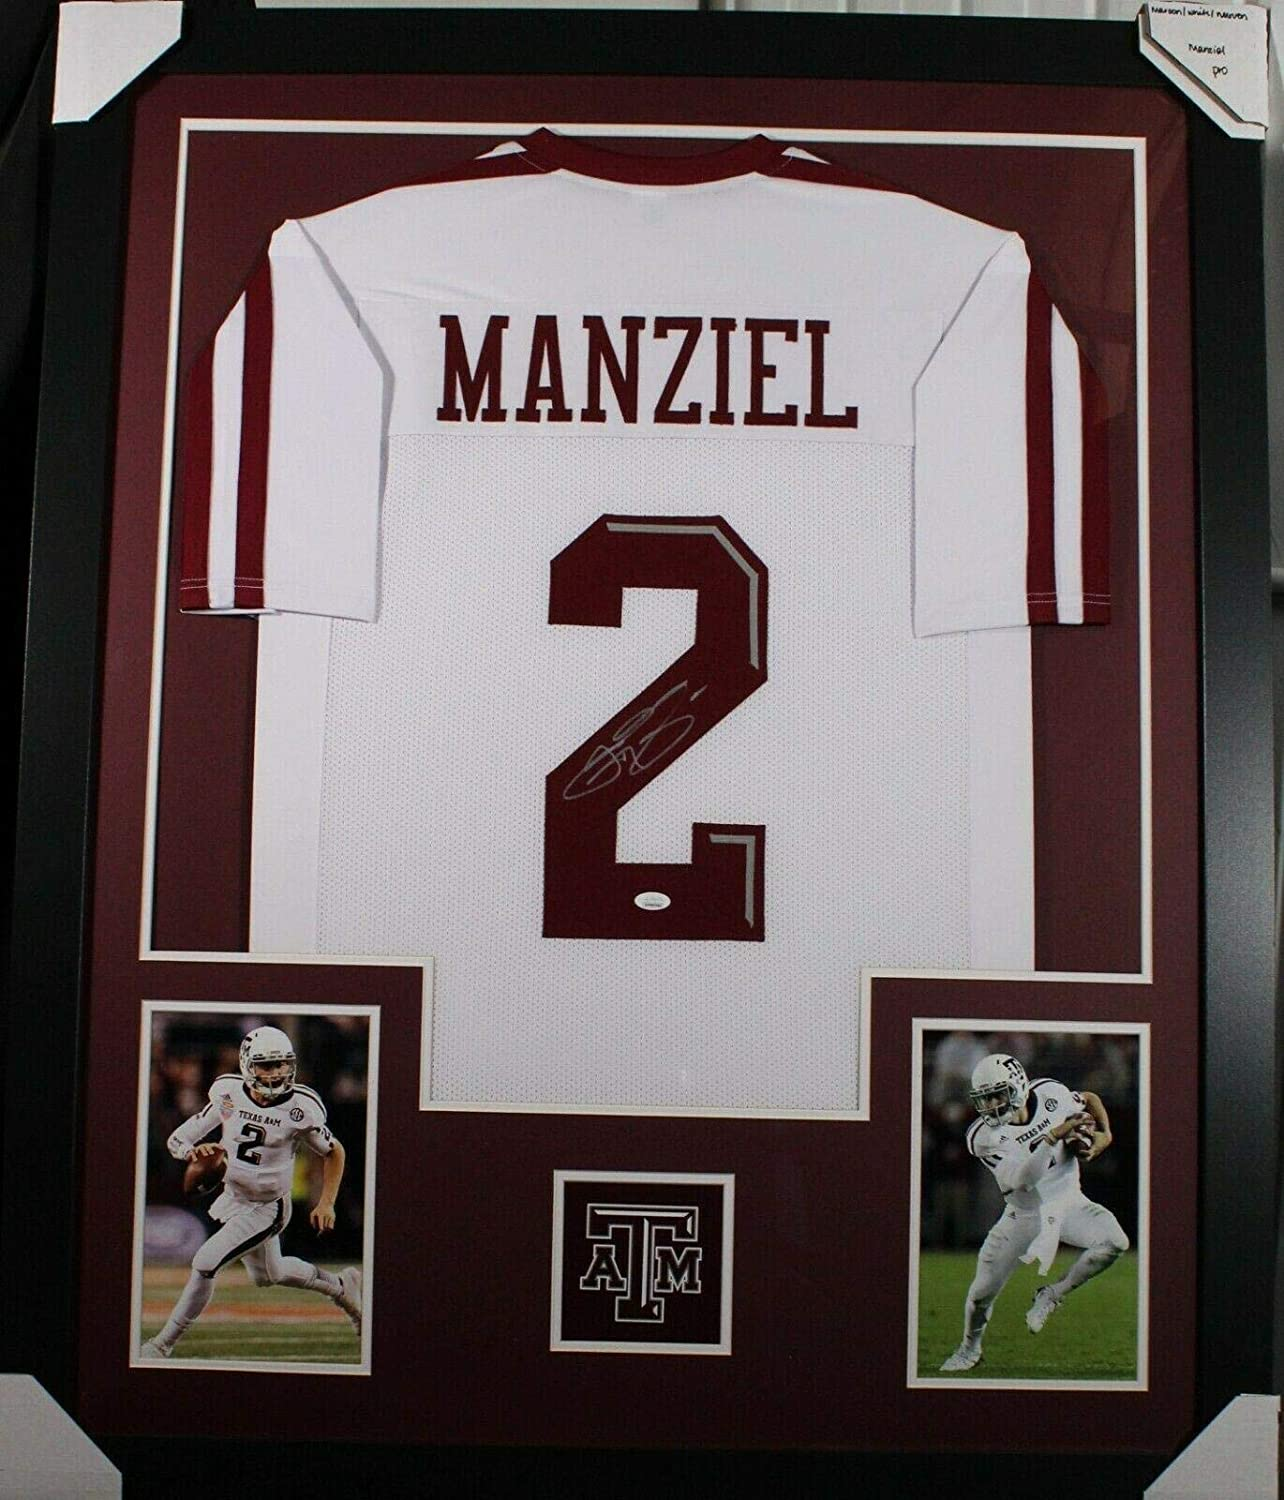 JOHNNY MANZIEL (A&M Aggies white PRO) Signed Autographed Framed Jersey JSA - Autographed College Jerseys